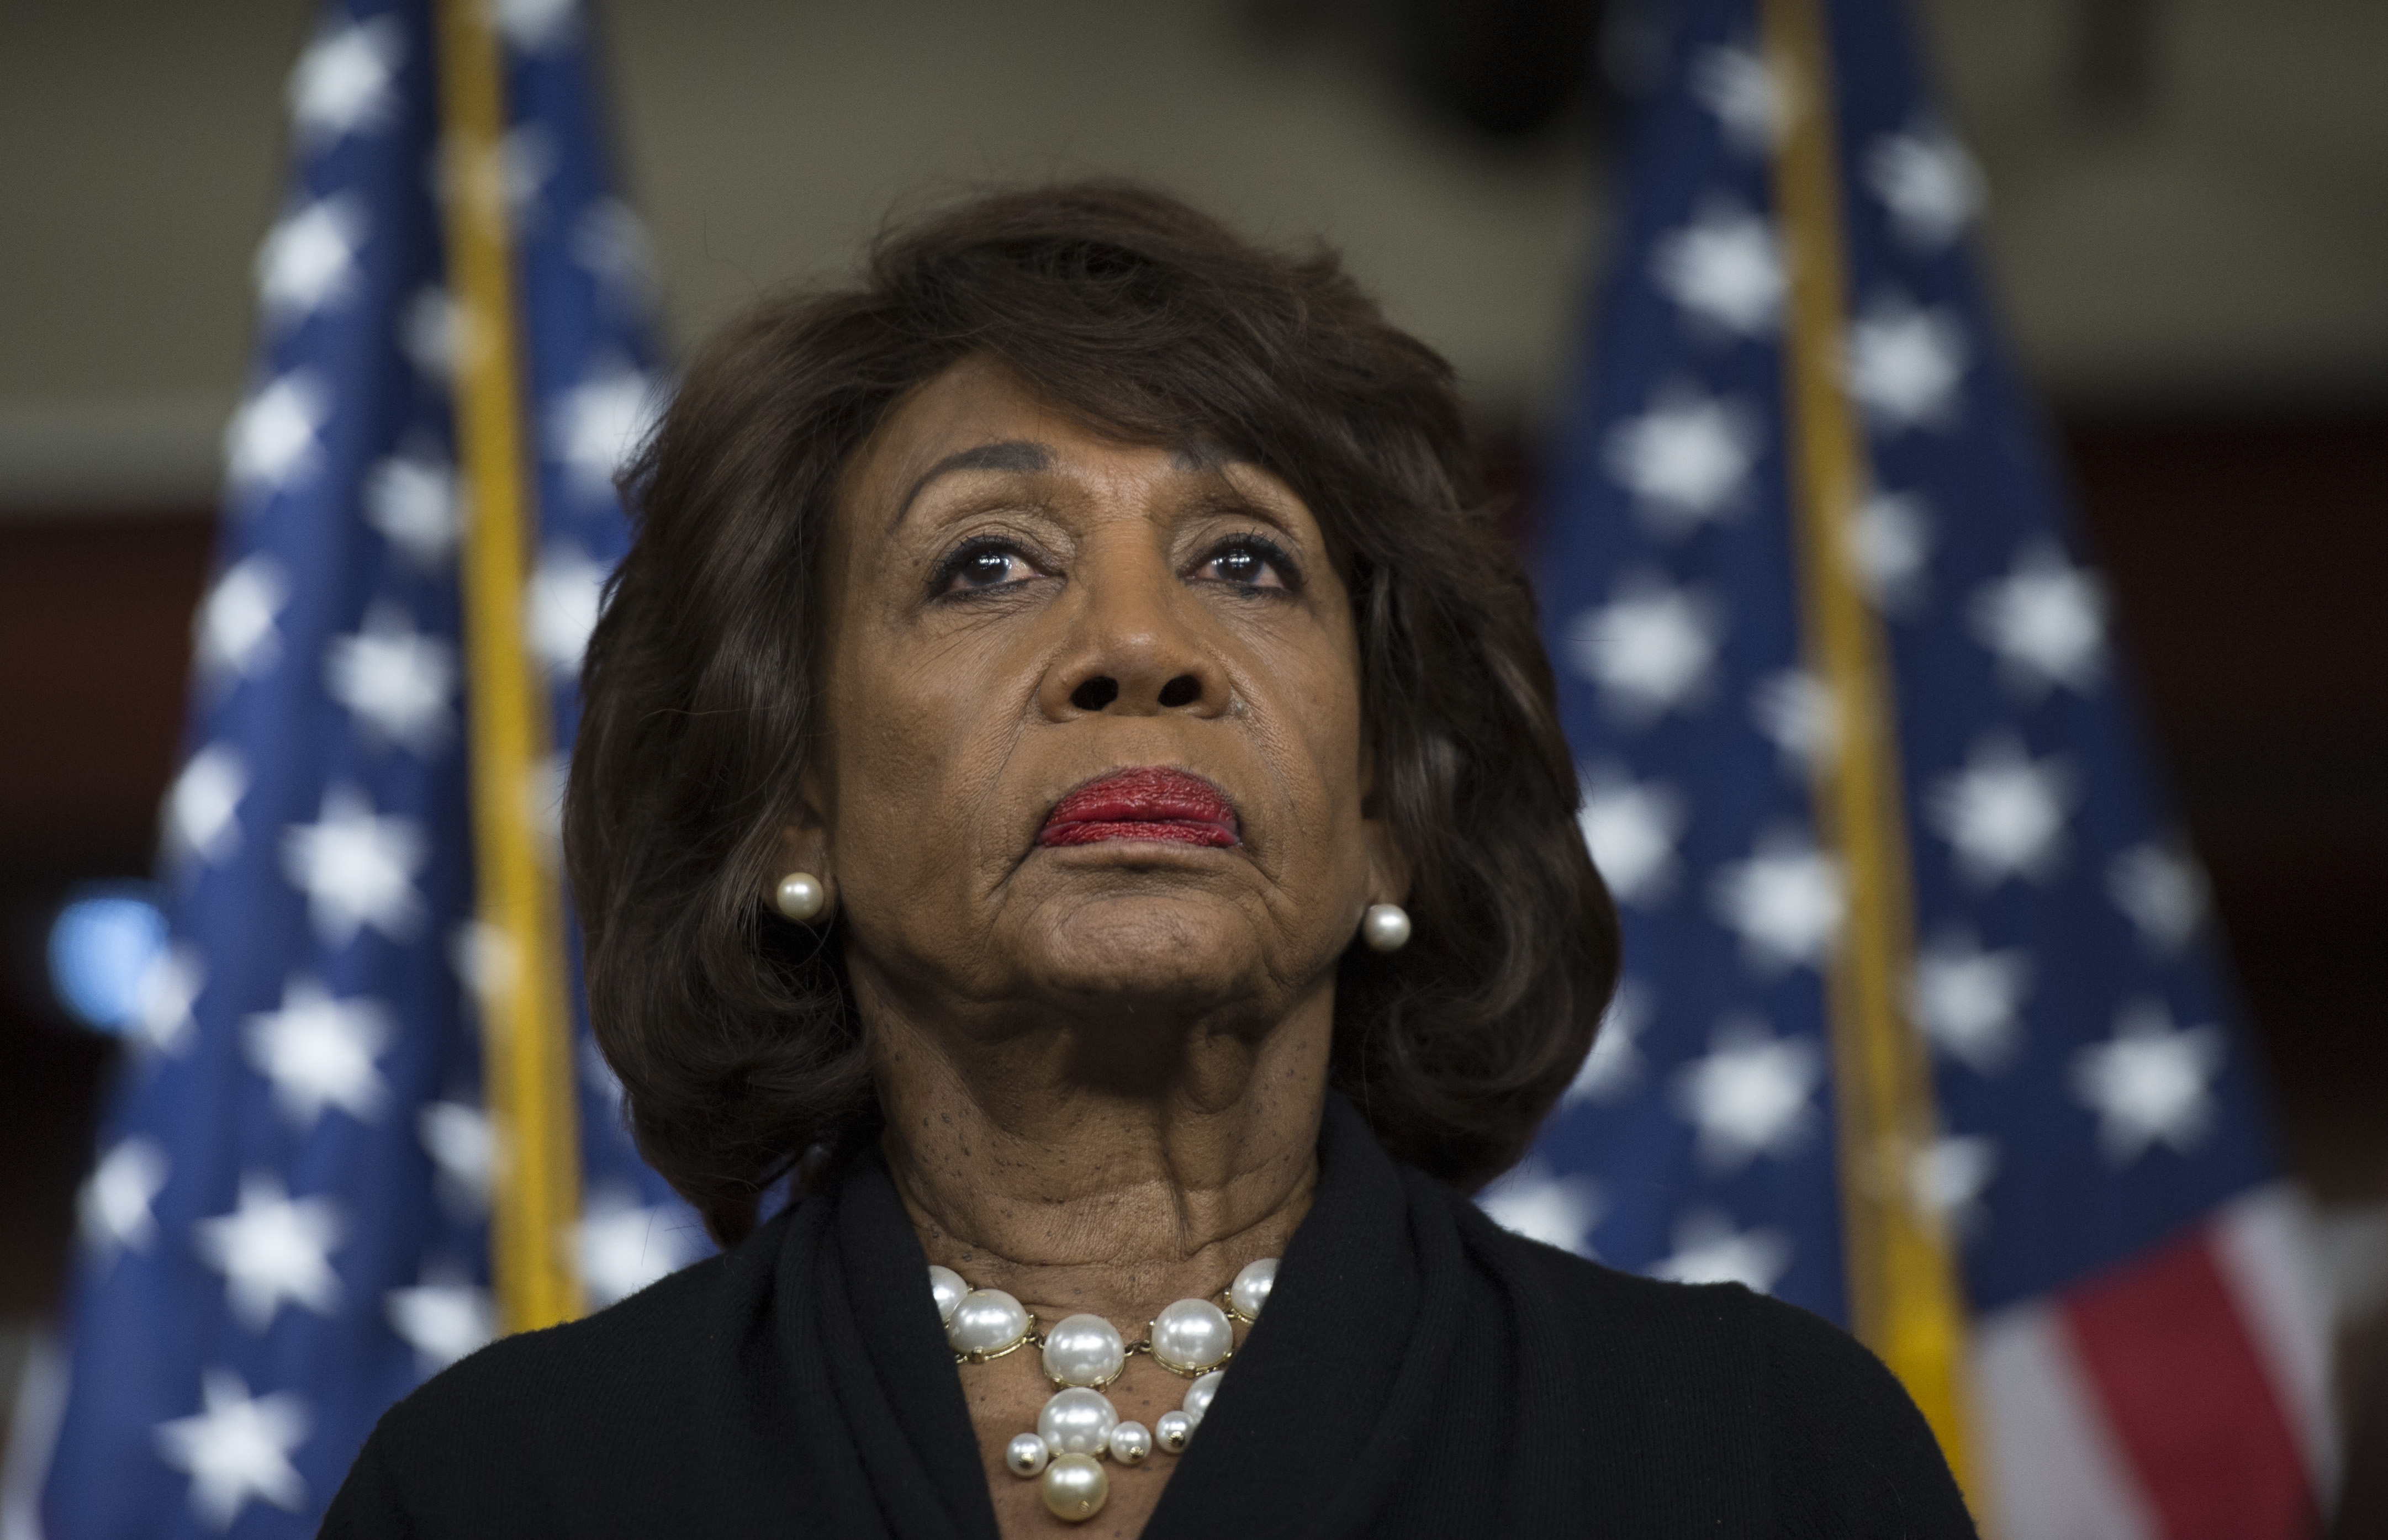 Trump Says Rep. Maxine Waters Needs To Take IQ Test